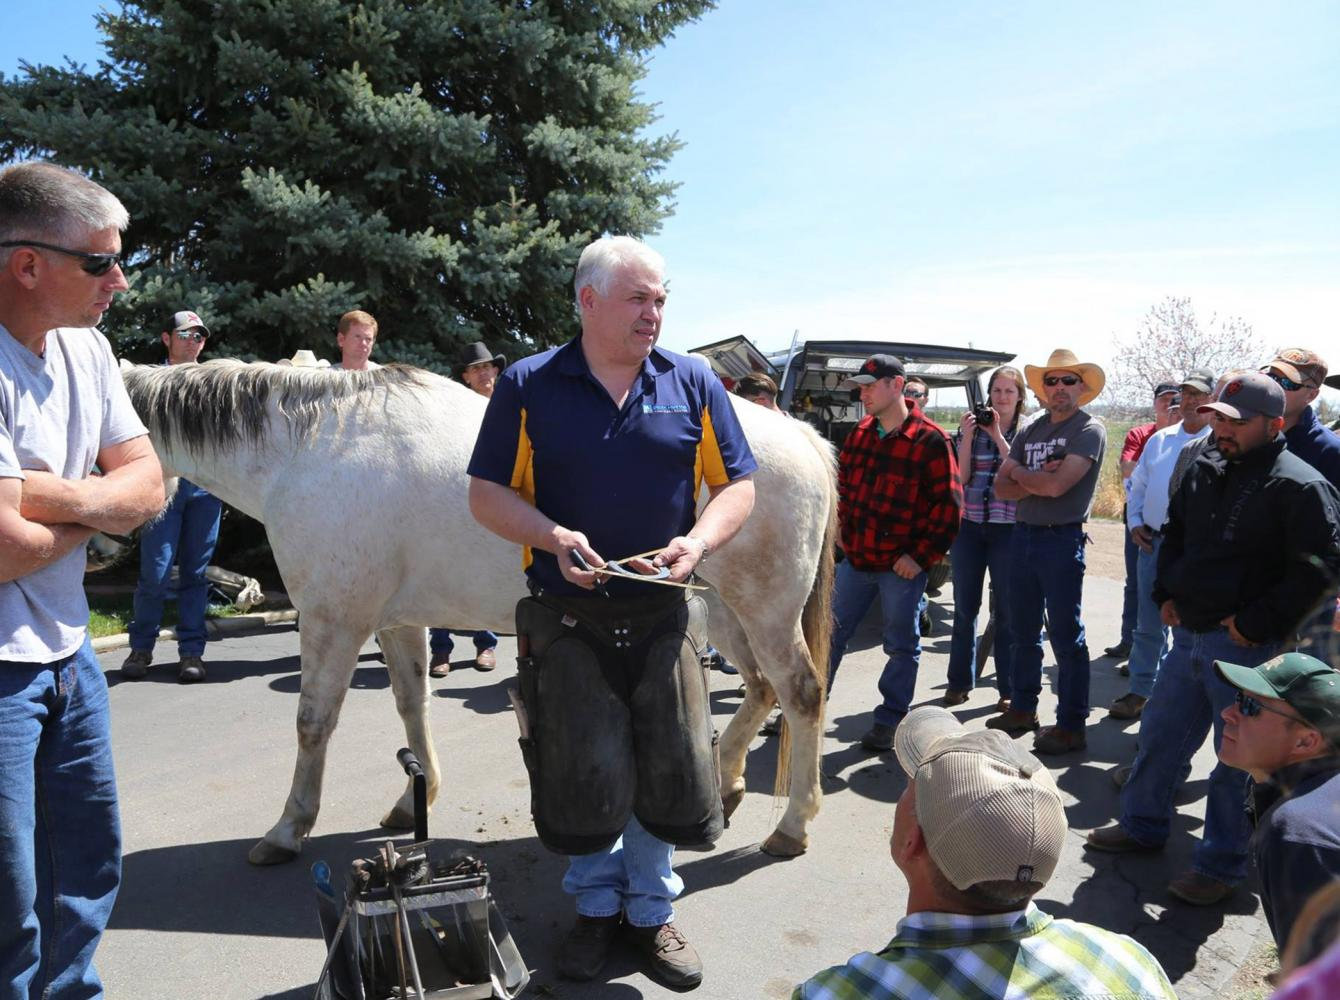 Grant Moon gives a clinic for farriers in the US